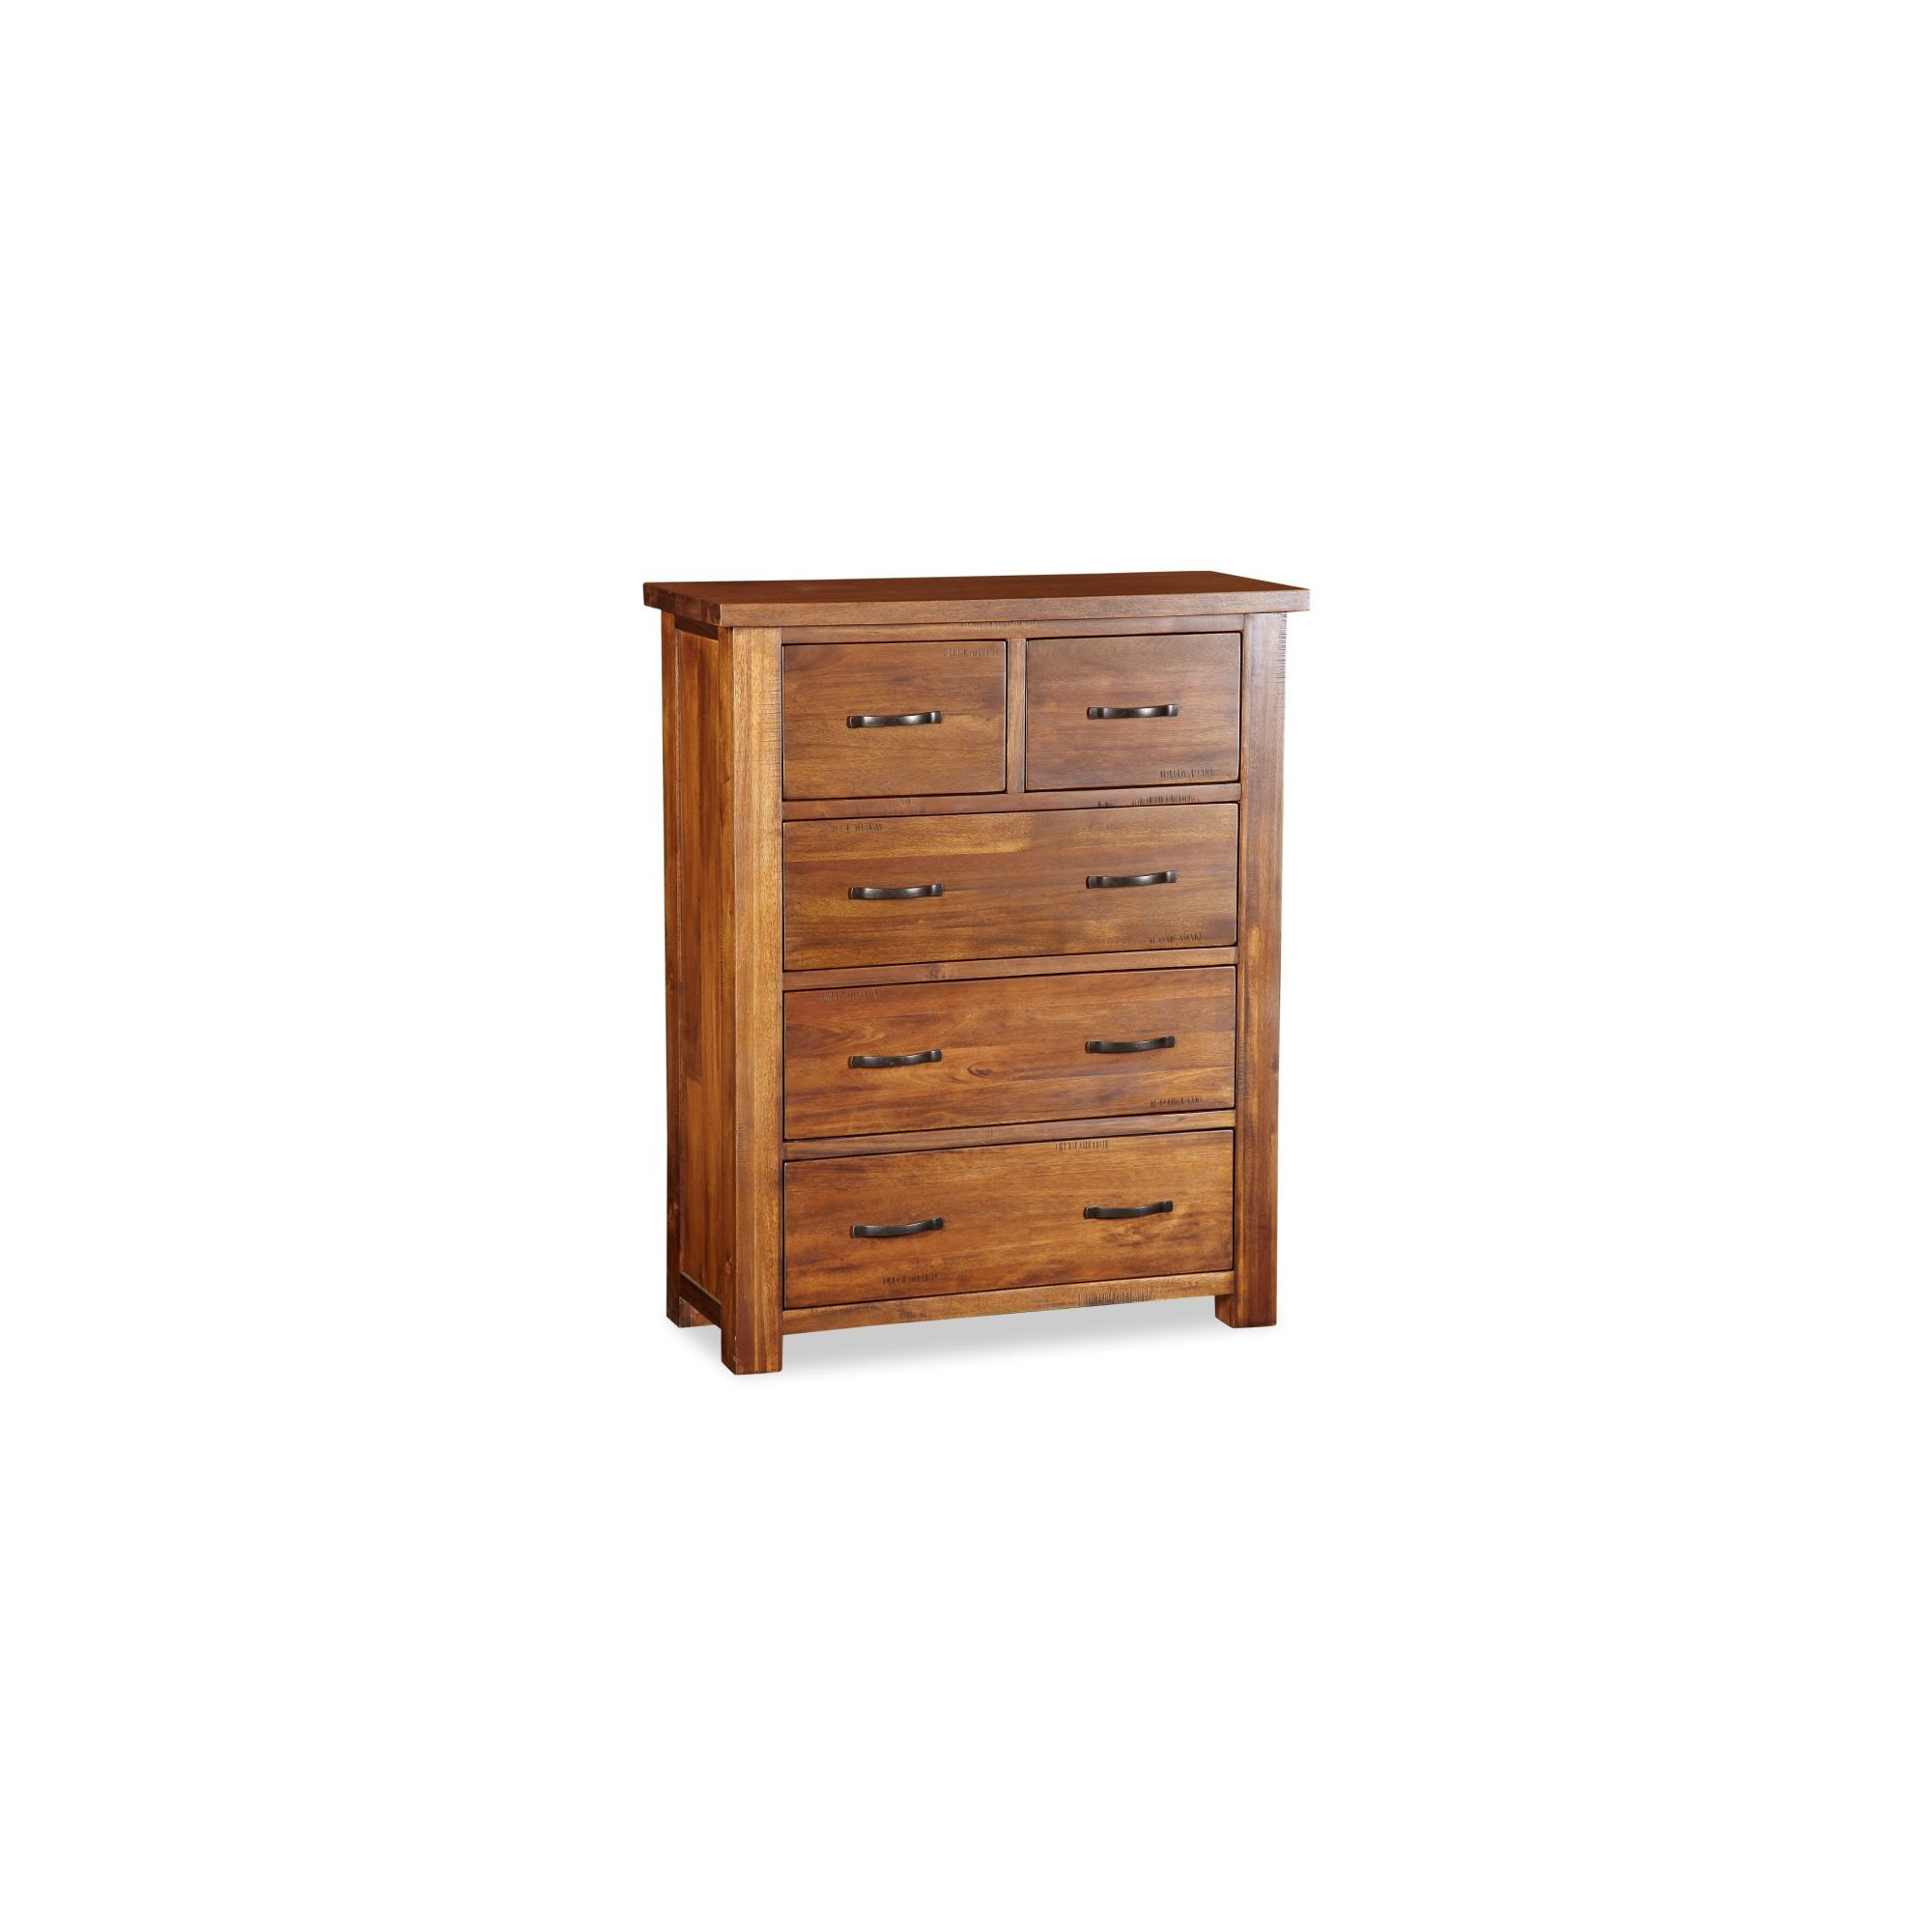 Alterton Furniture Romain 3 Drawer Chest at Tesco Direct